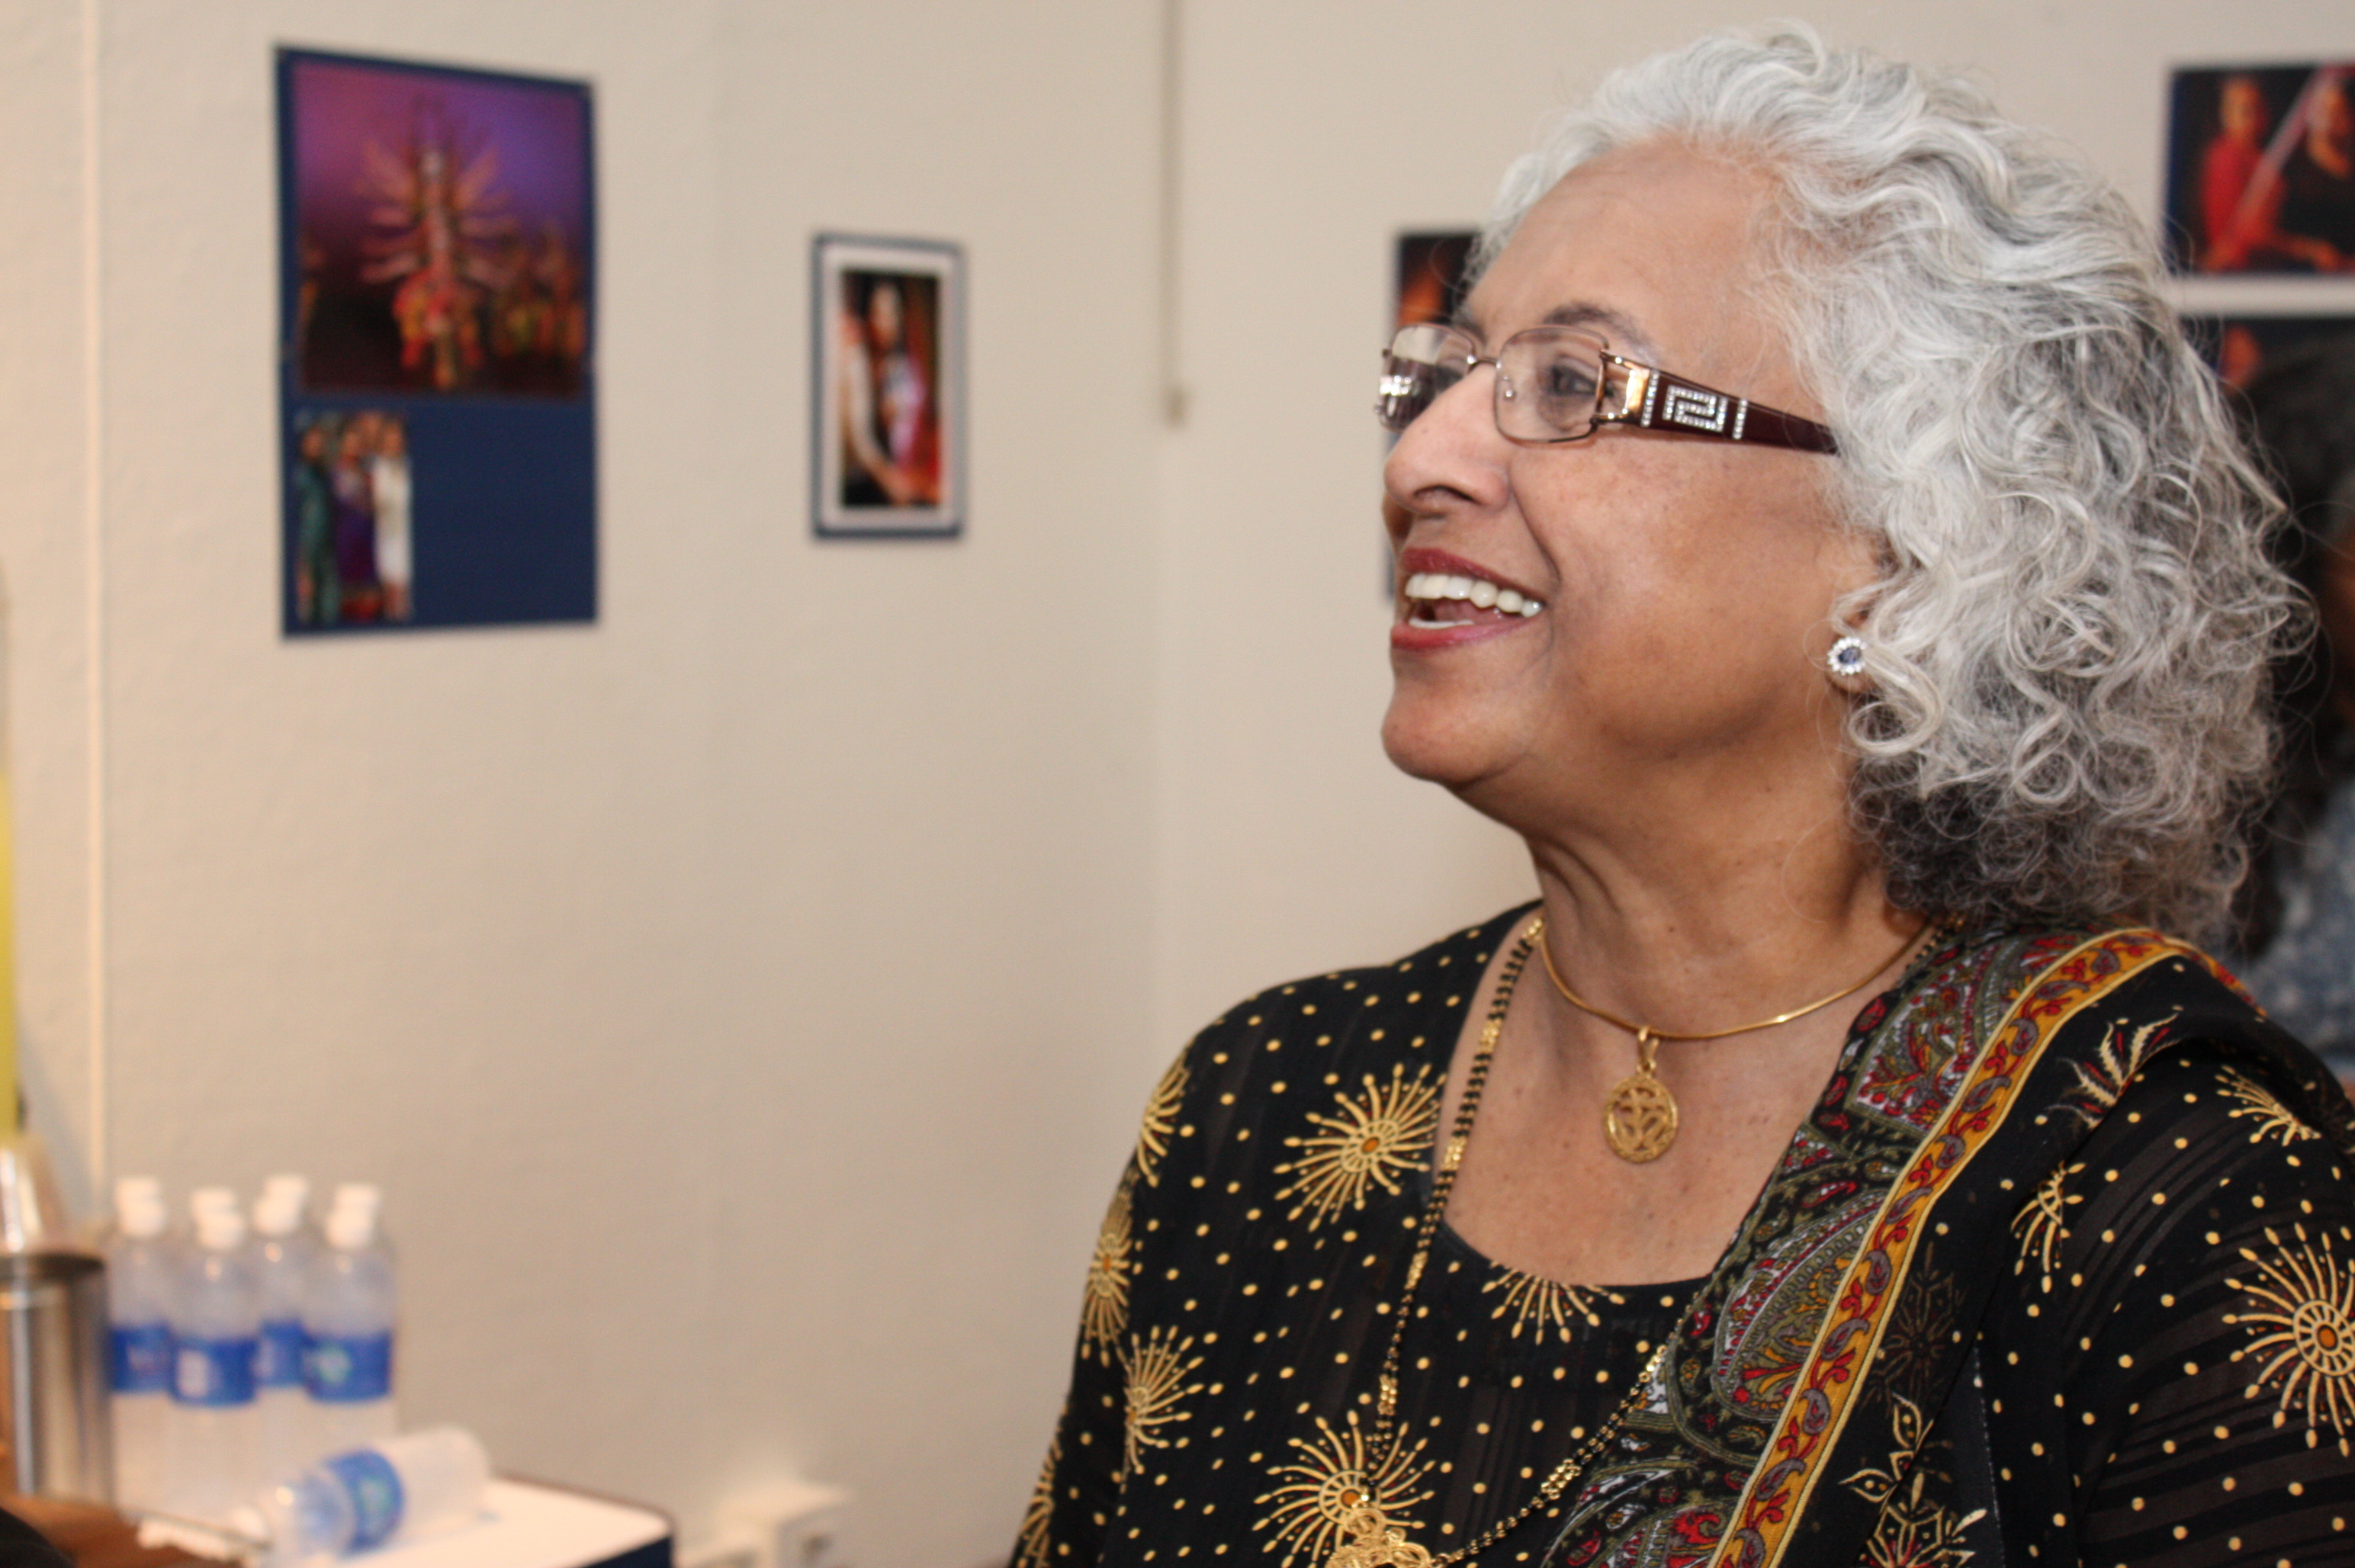 Shakuntala Rajagopal at the opening night reception